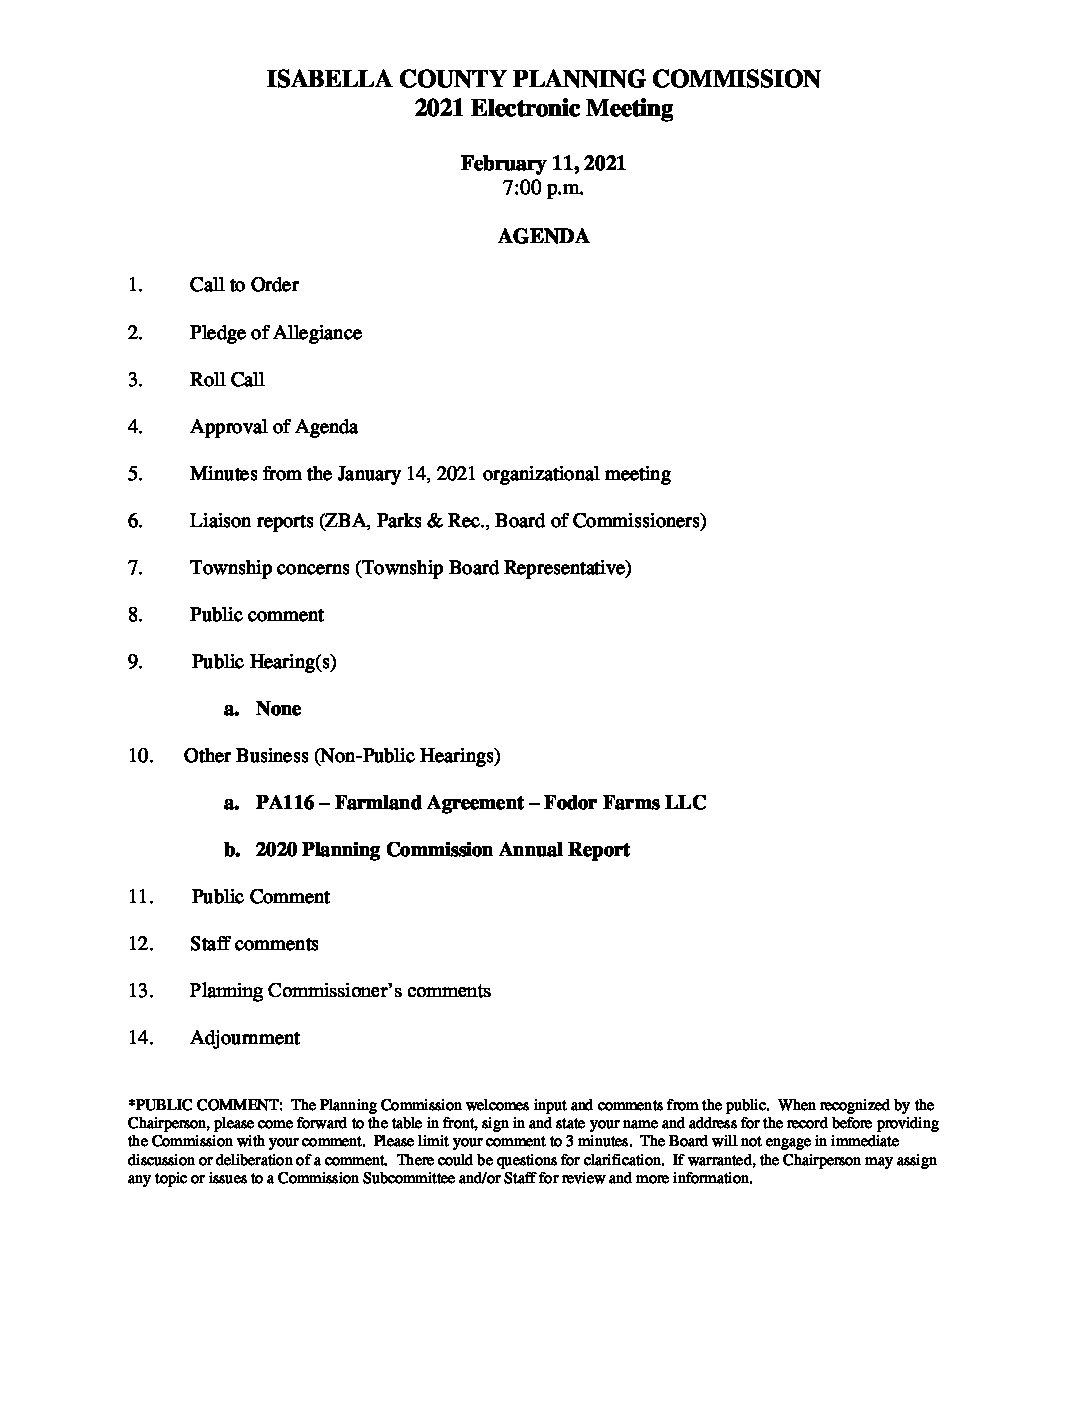 preview image of first page February 11, 2021 Planning Commission Agenda